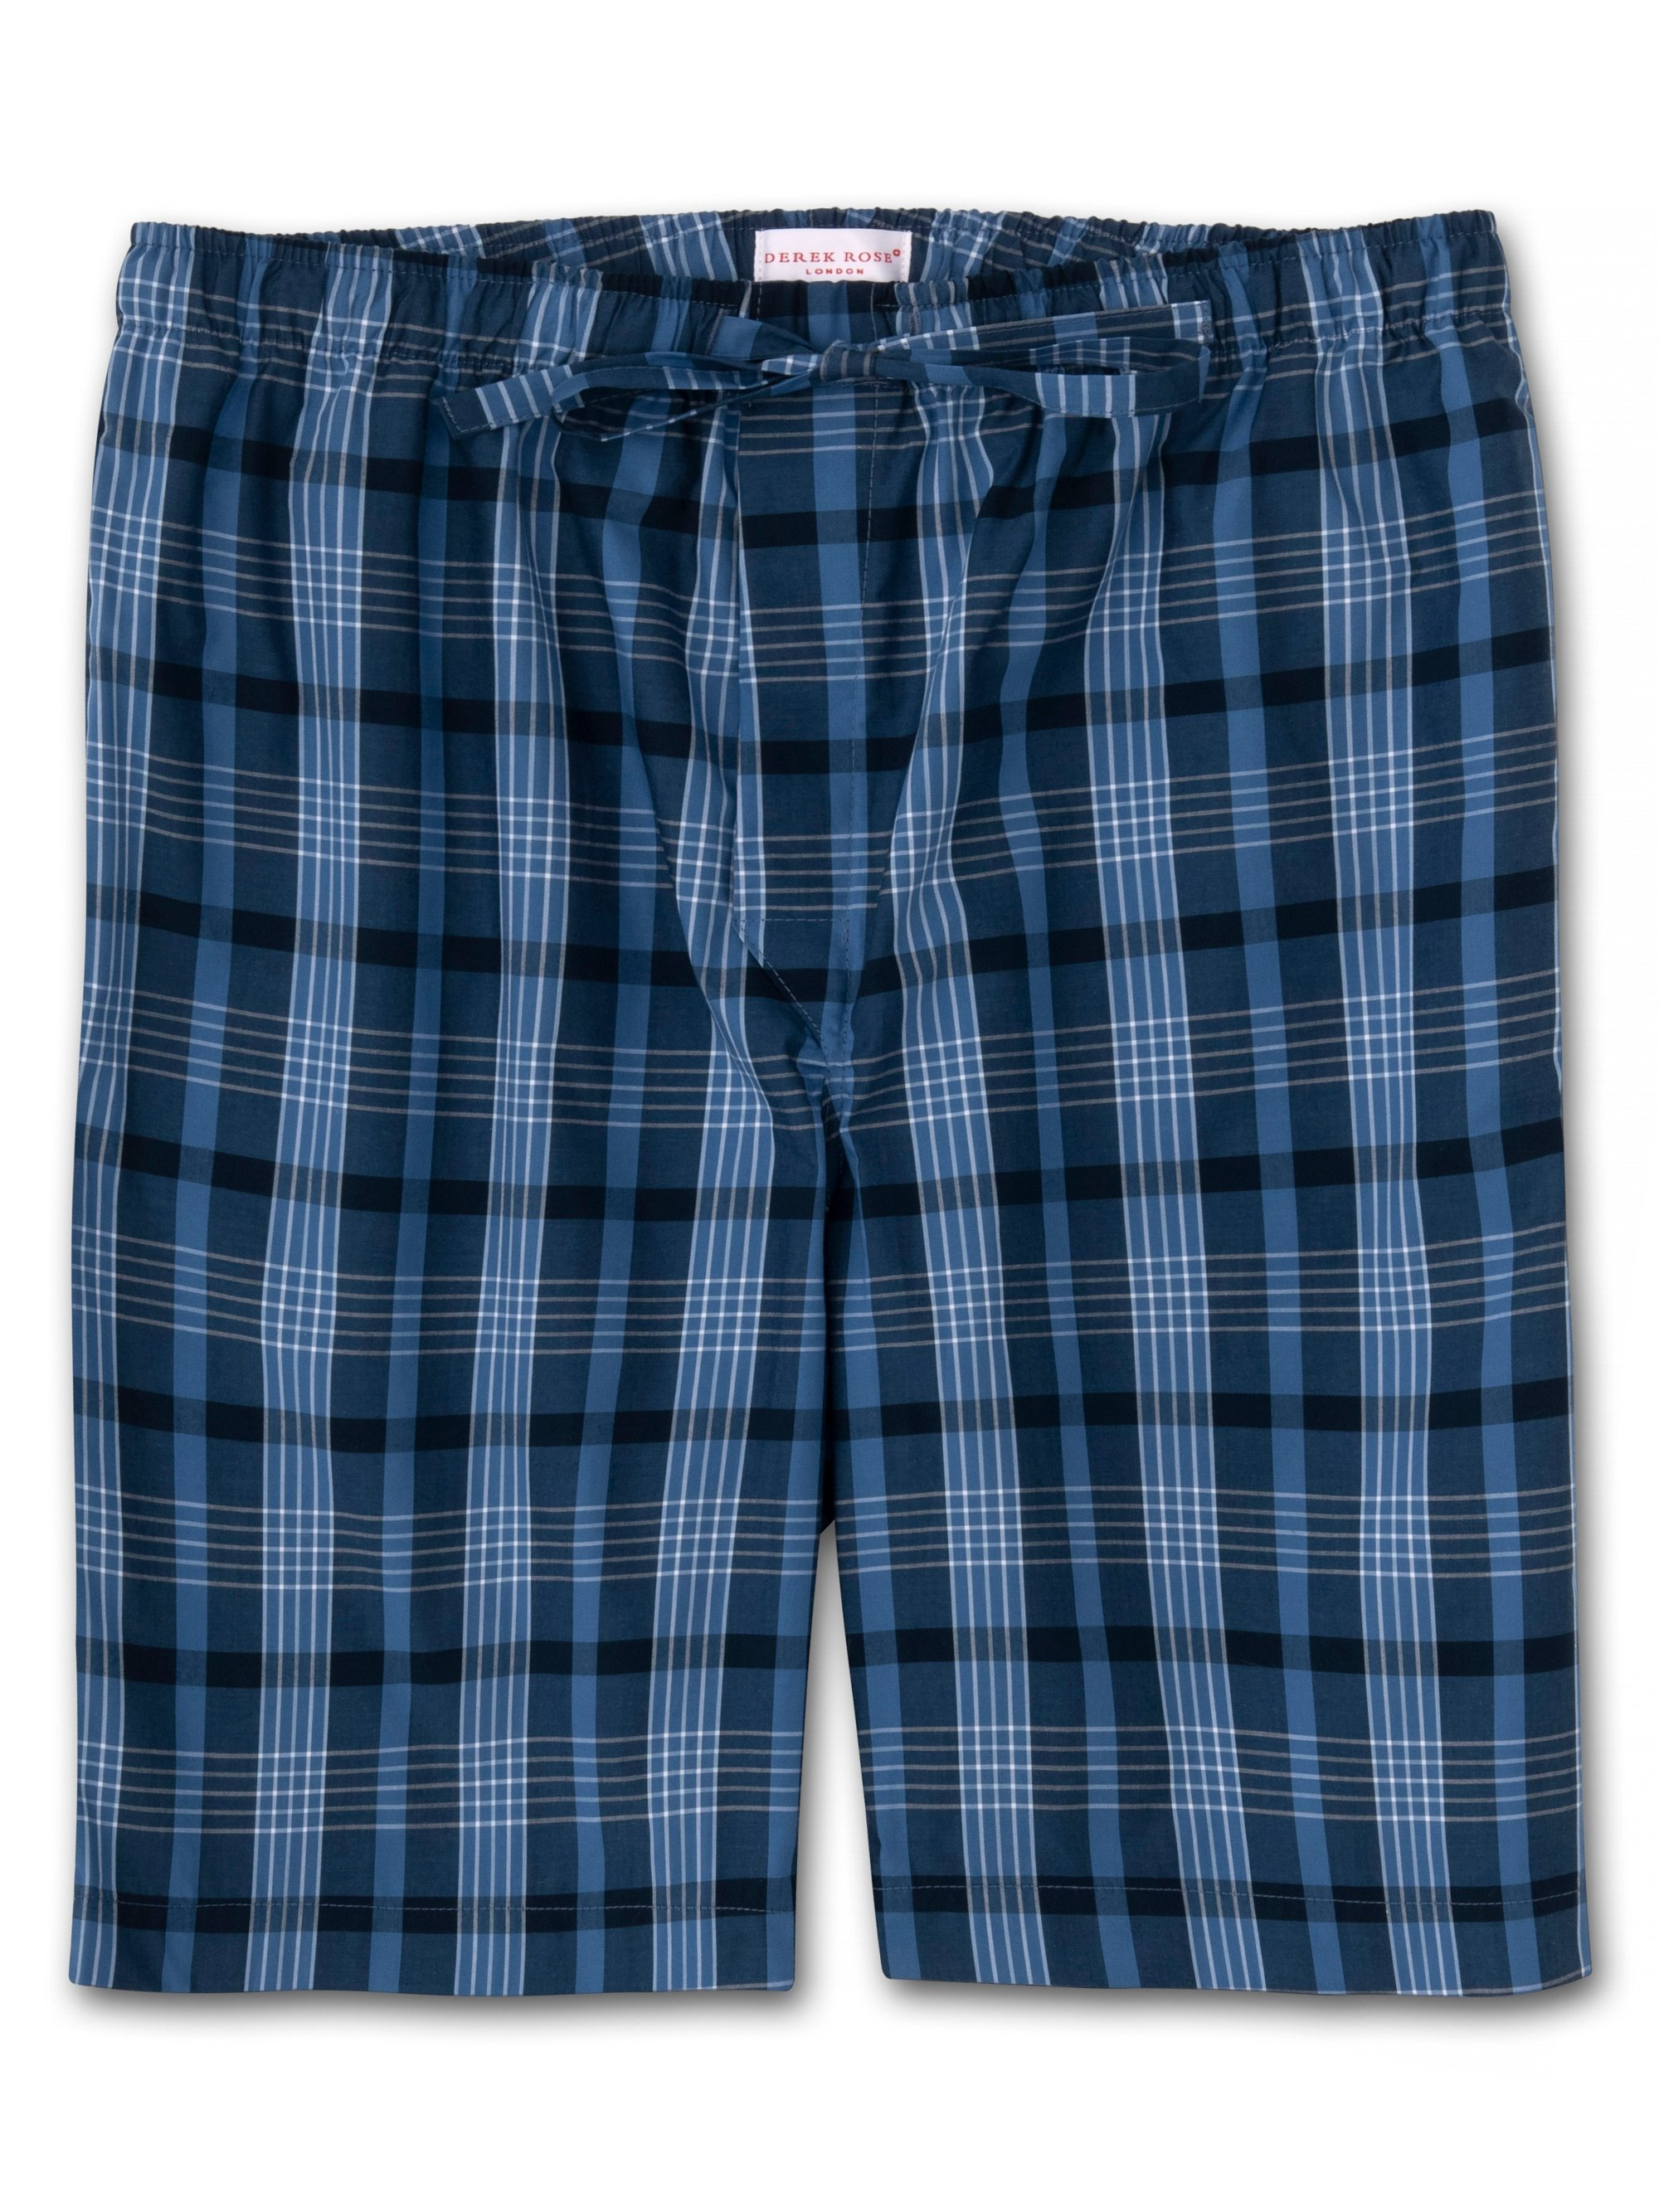 Men's Lounge Shorts Barker 28 Cotton Check Blue